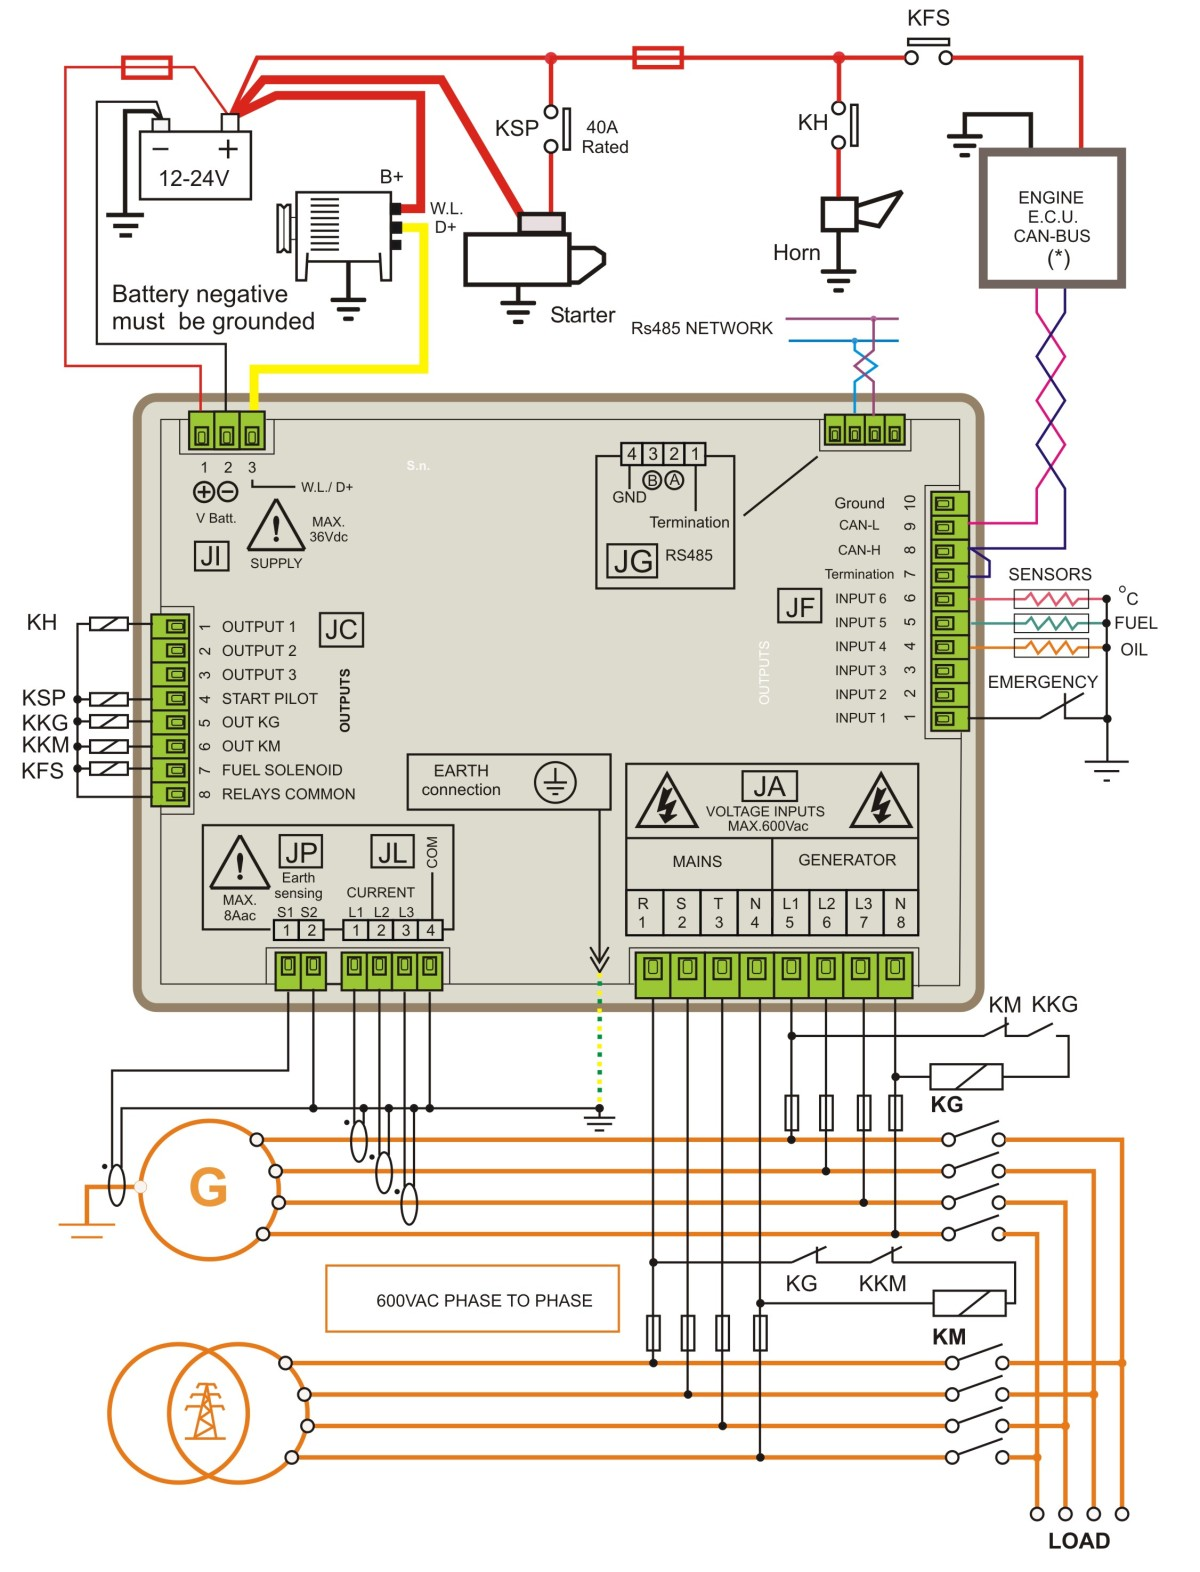 control wiring diagram of ats wiring diagram rh 75 tempoturn de